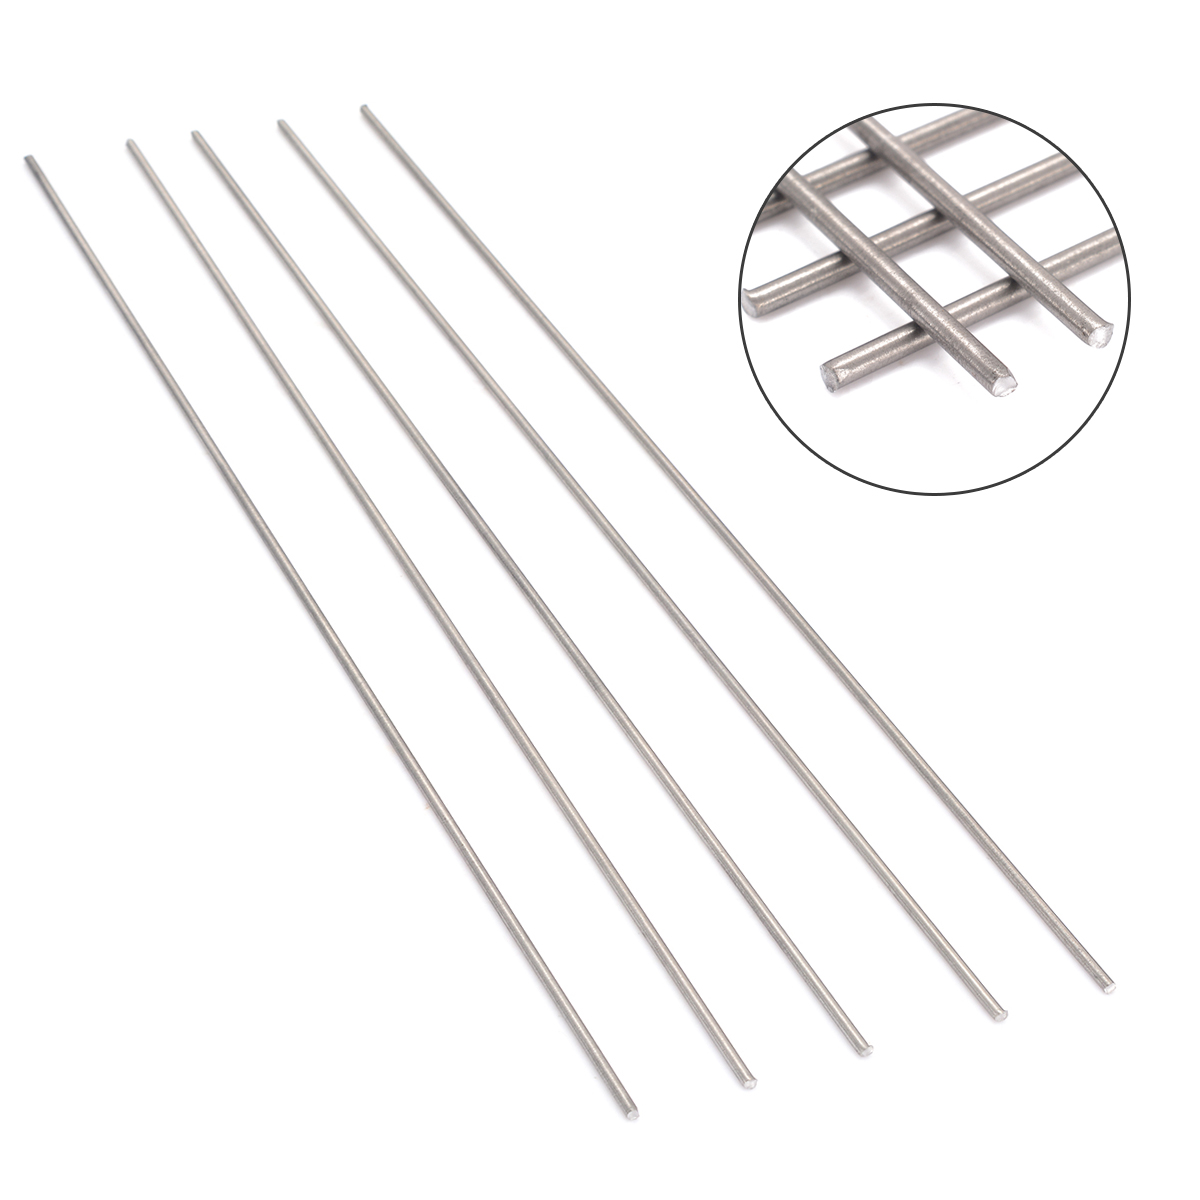 Diameter 3mm to 100mm 1 pc 250MM Titanium Ti Grade 5 Gr.5 GR5 Rod Round Bar